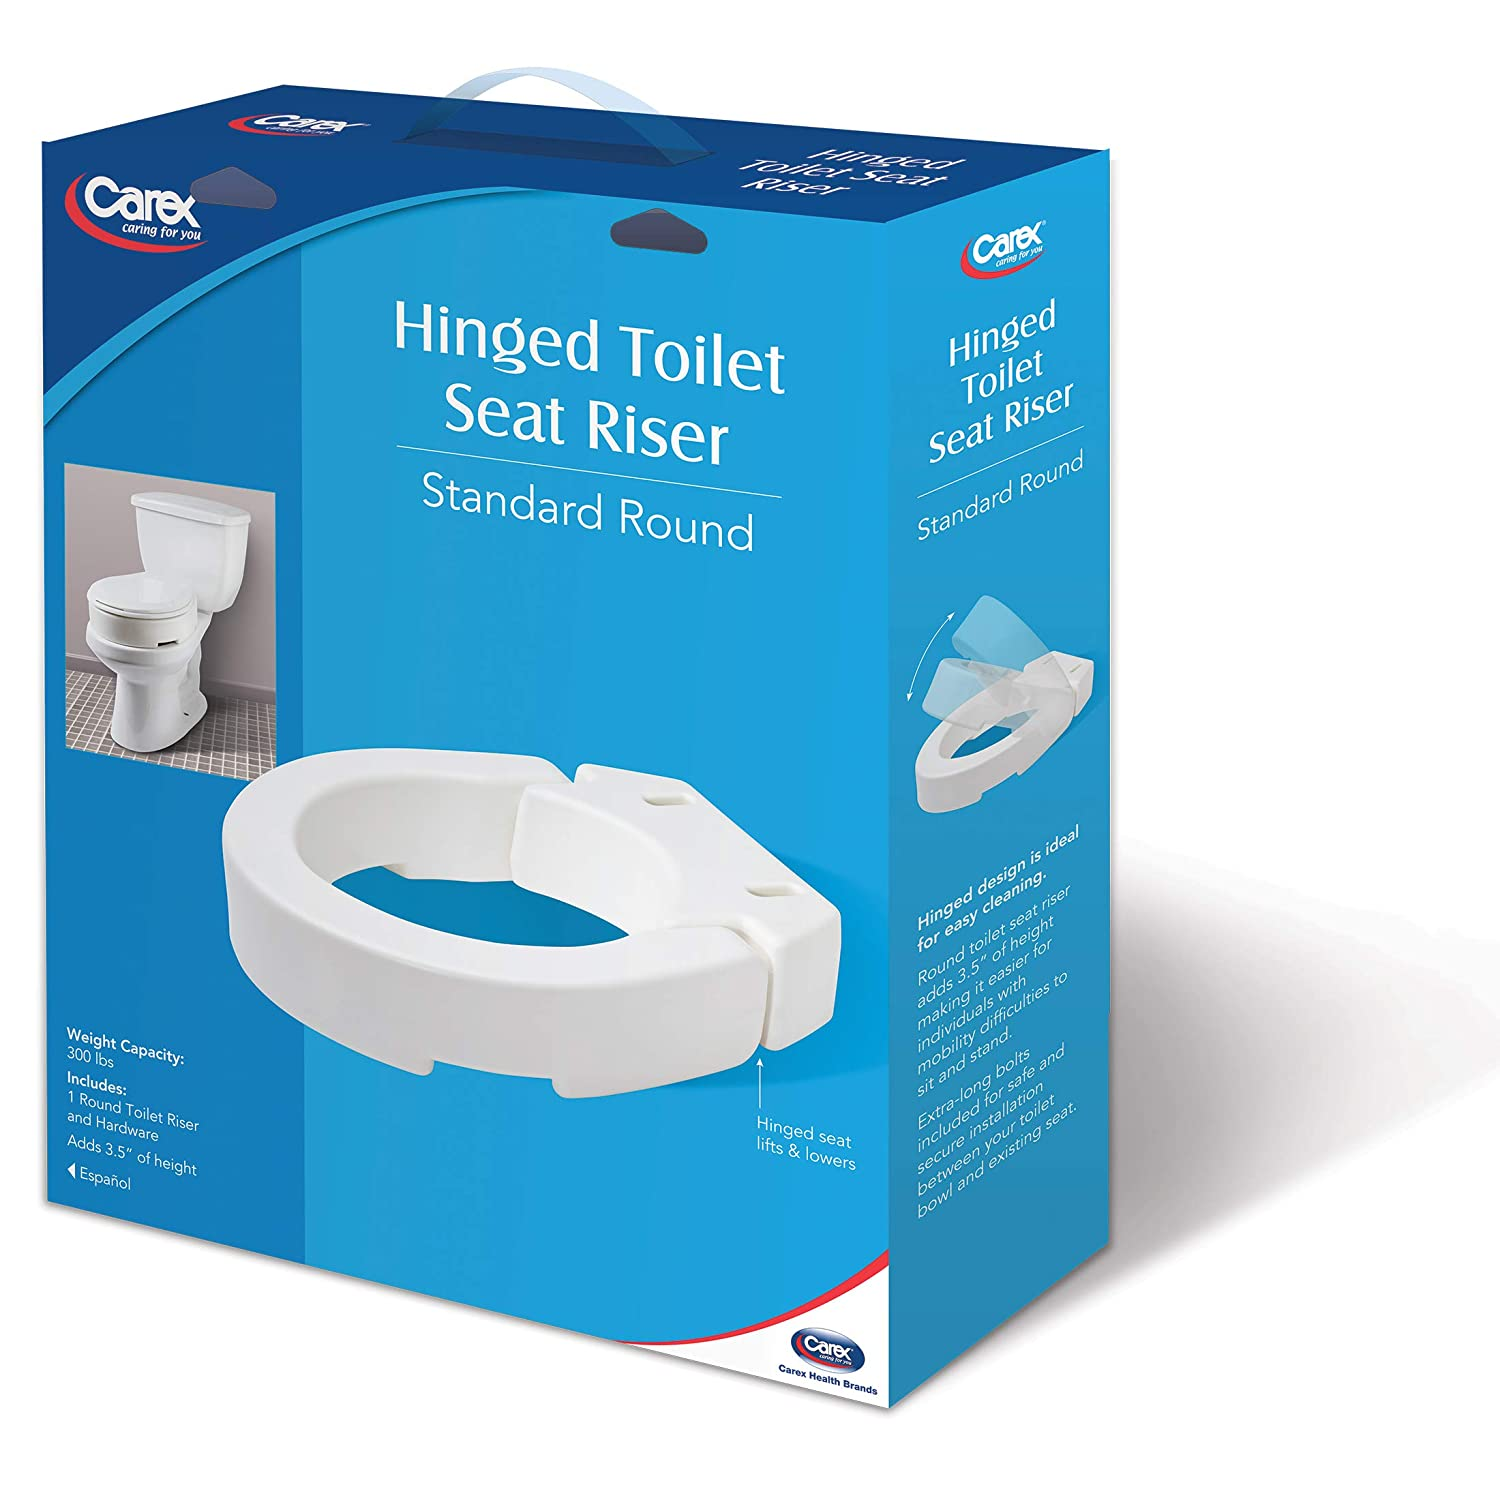 Amazon.com: Carex Hinged Toilet Seat Riser, Adds 3.5 Inches of ...